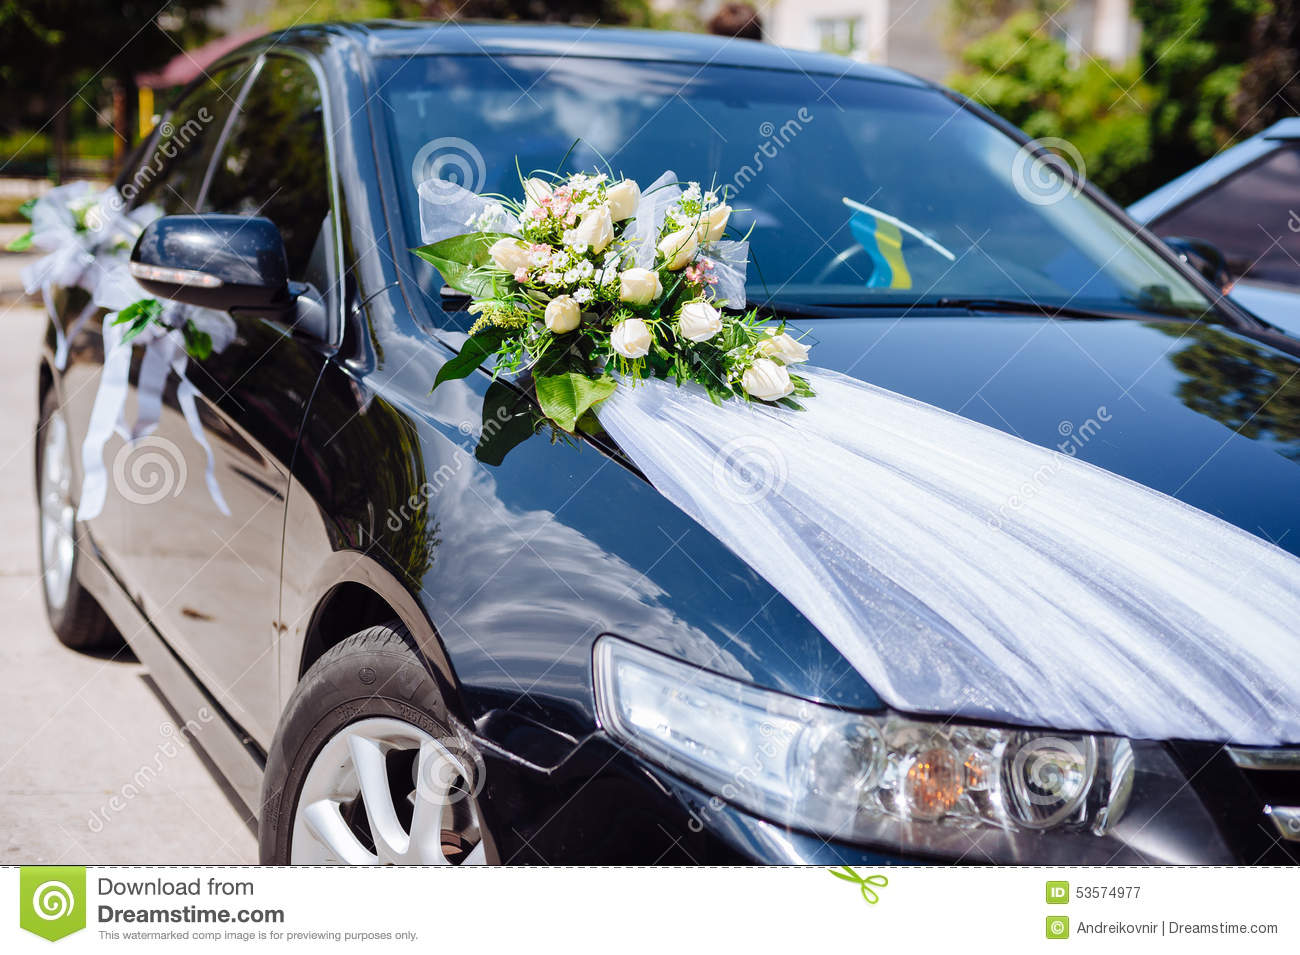 Wedding car decor flowers bouquet car decoration stock for Automotive decoration